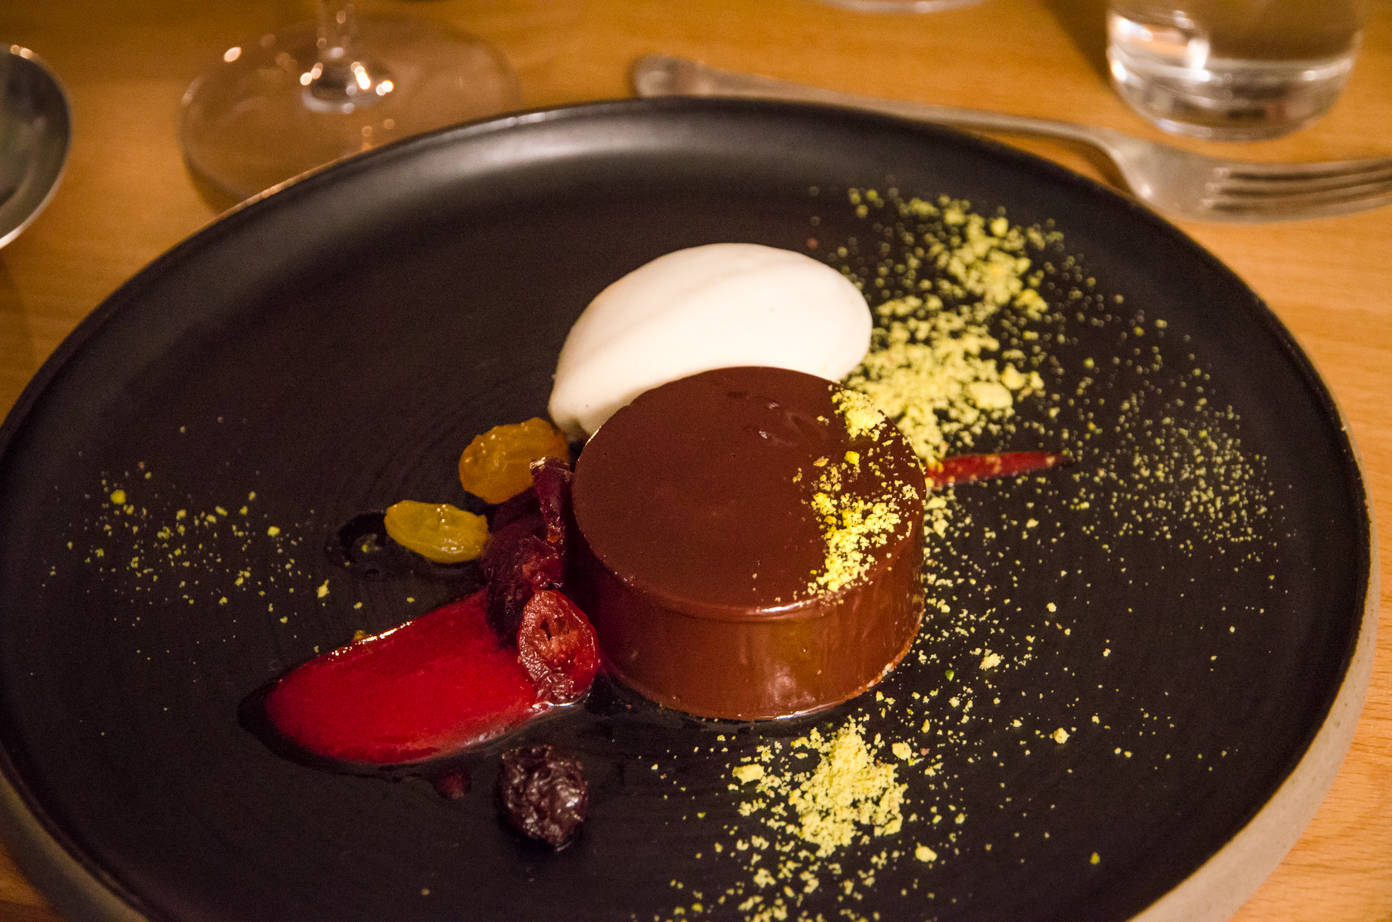 Plate of Valrhona fondant, banana and yoghurt ice cream from the Water House Project Supper Club